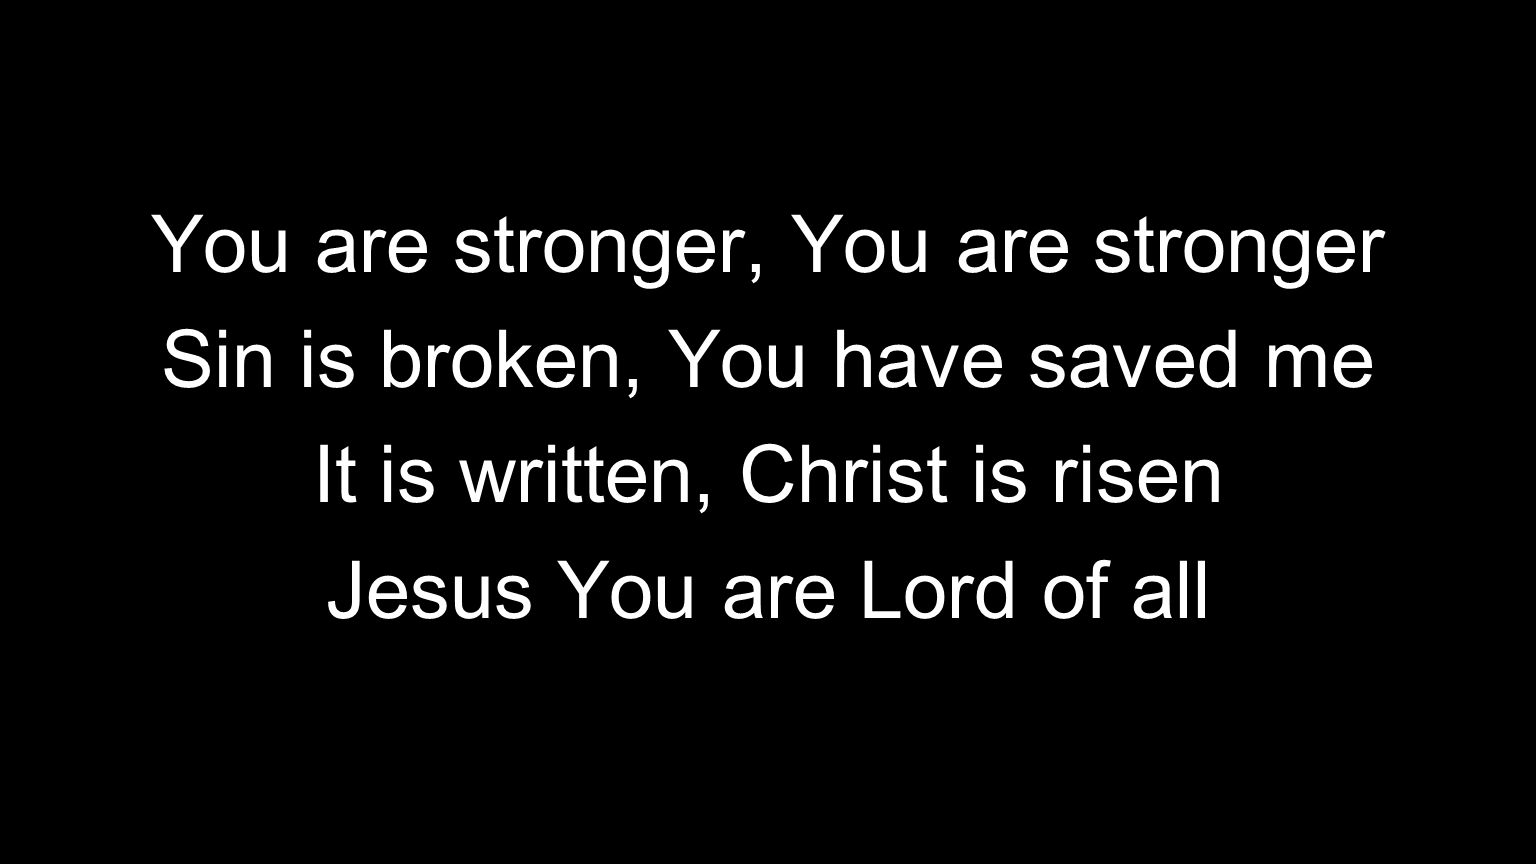 You are stronger, You are stronger Sin is broken, You have saved me